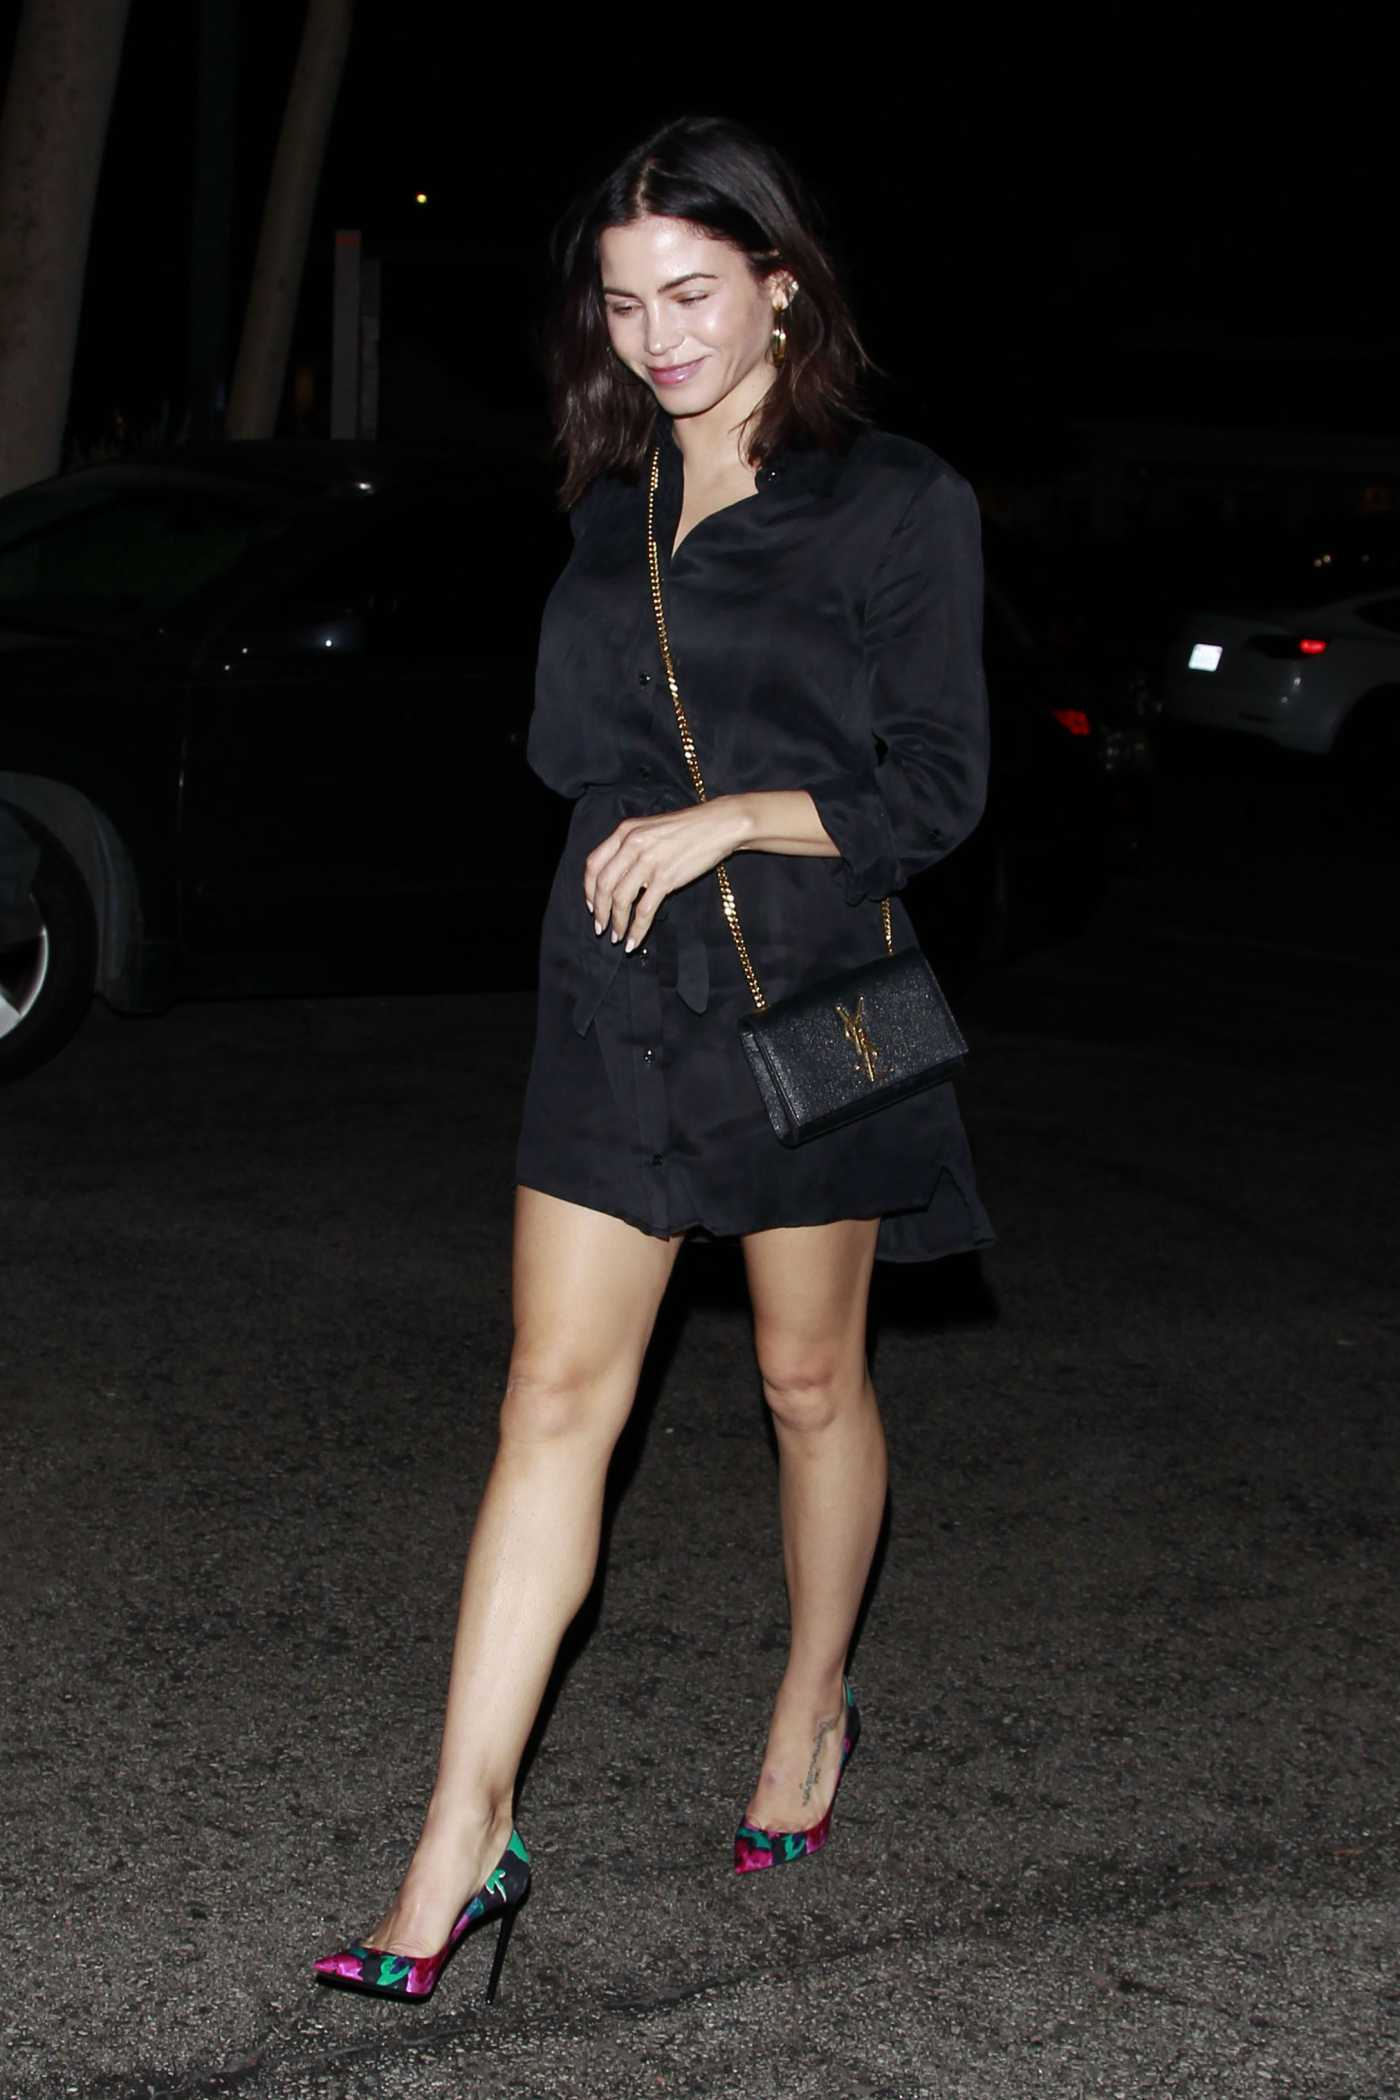 Jenna Dewan in a Black Dress Was Seen Out in Bel-Air 08/15/2019